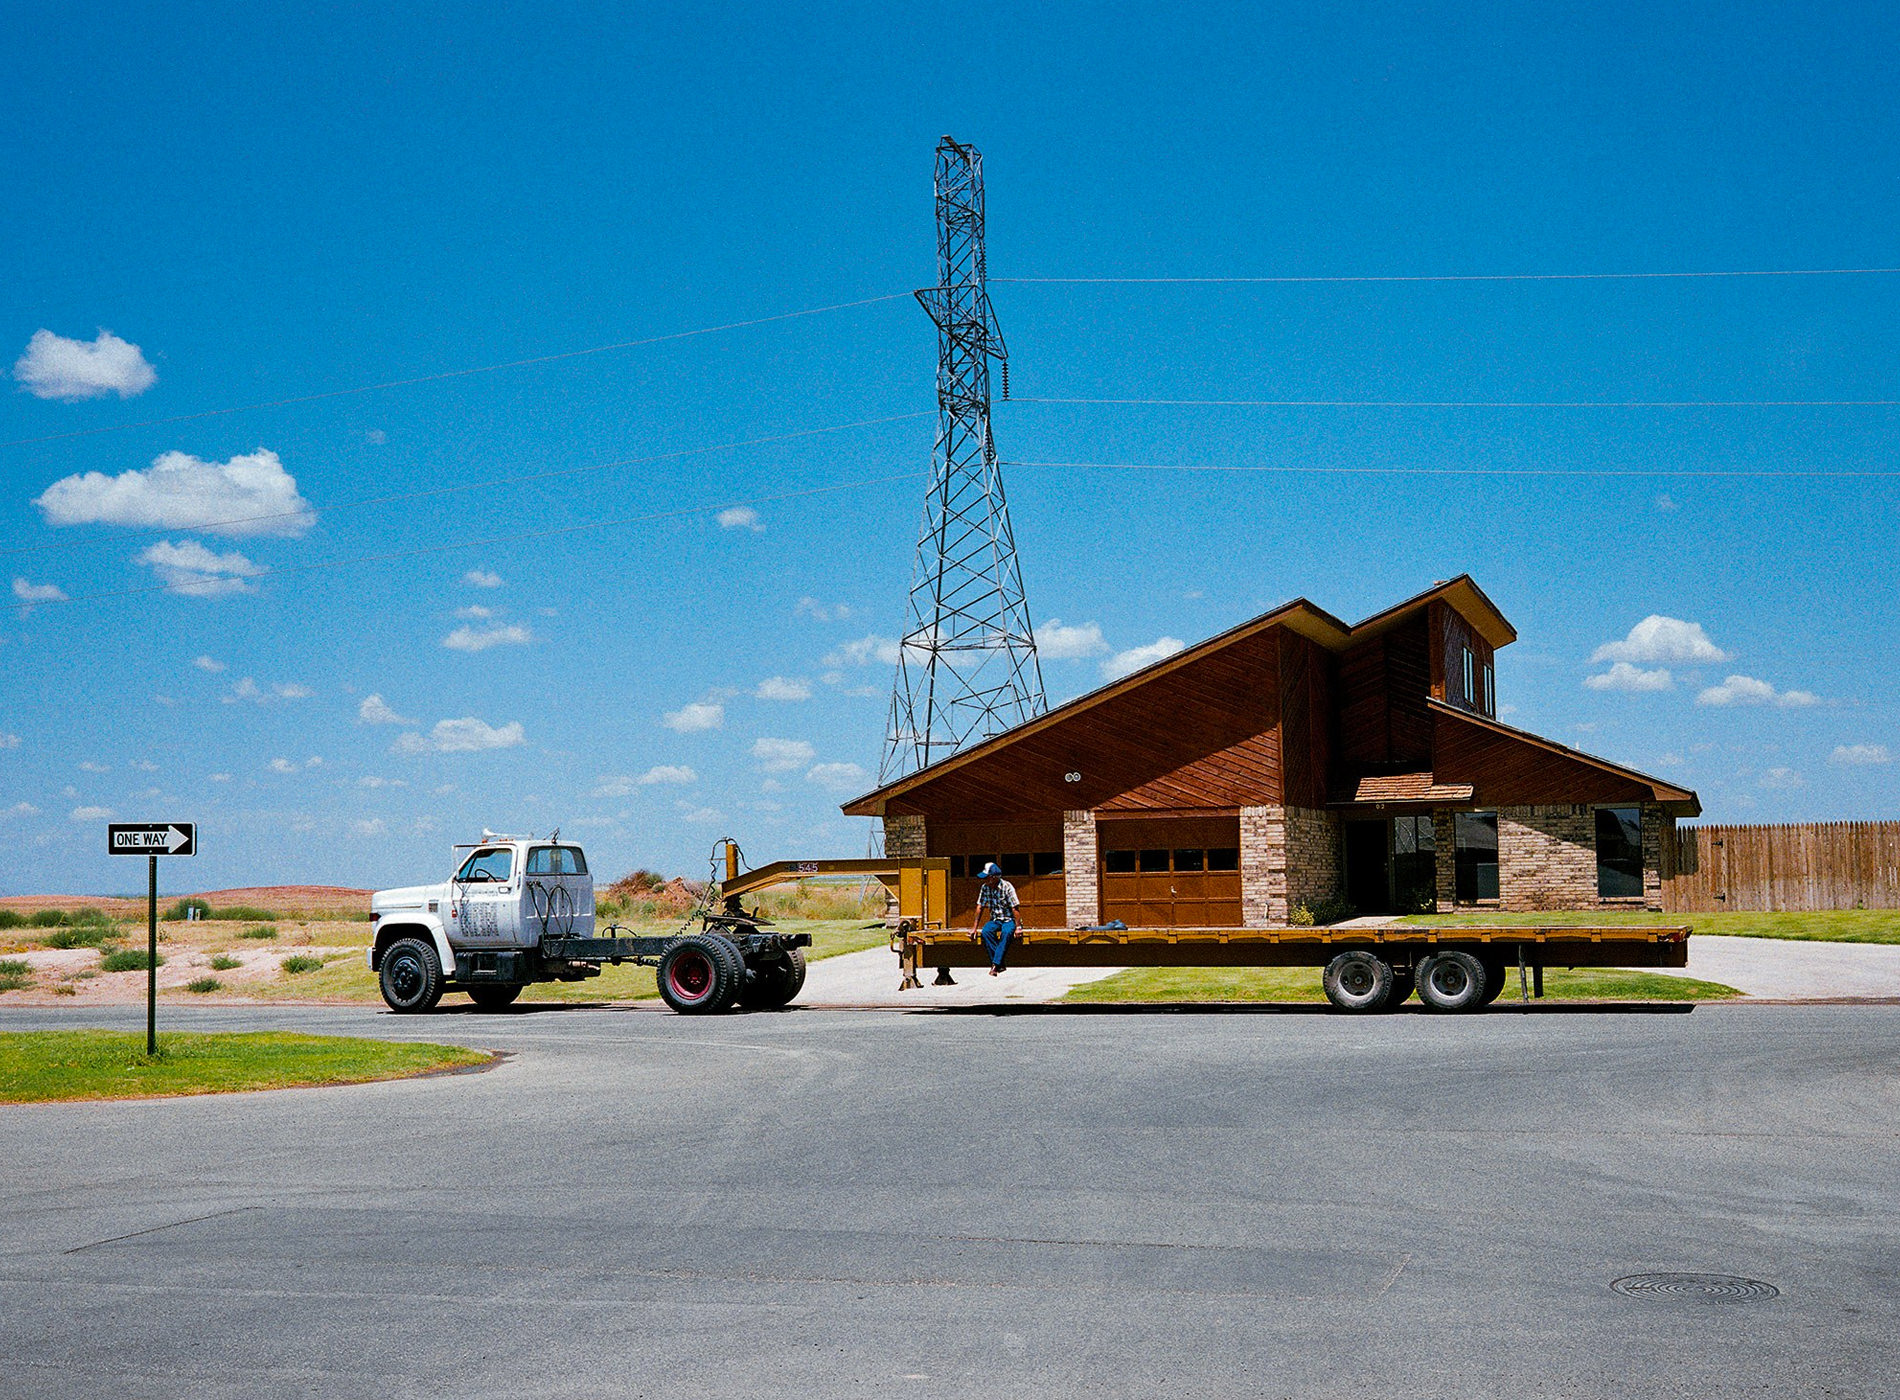 'Immobile Home', Midland, Texas, 1983 photograph by Wim Wenders